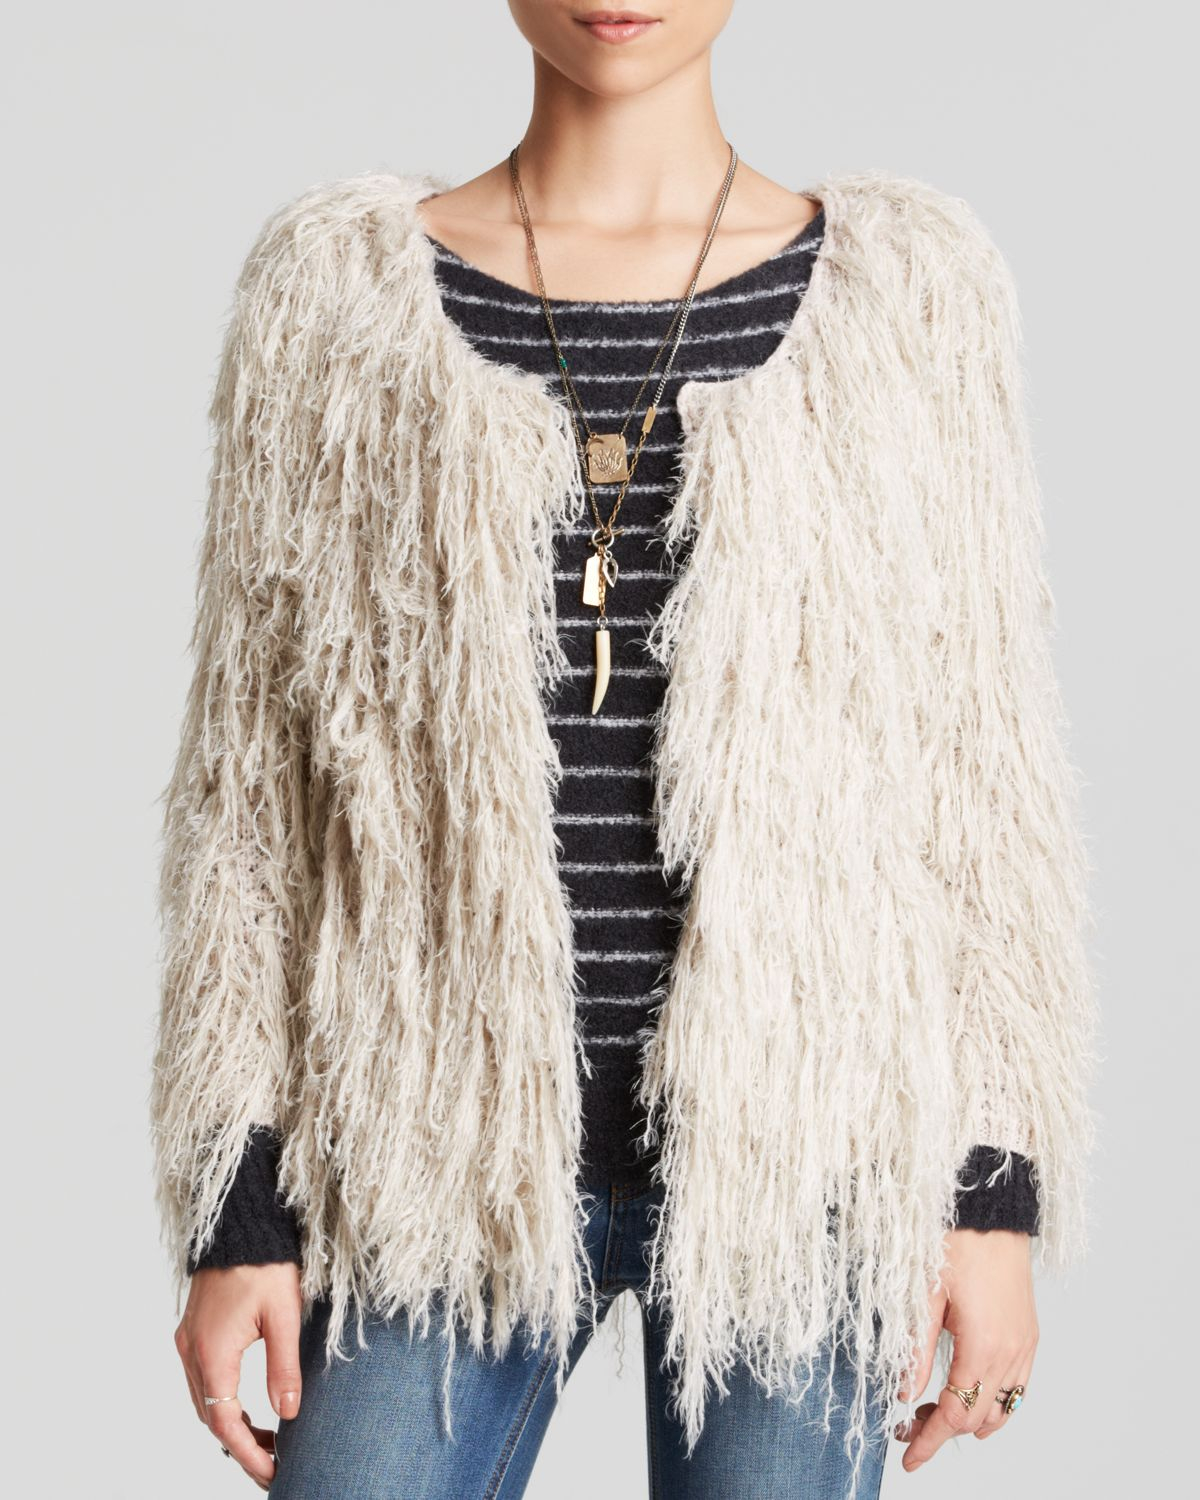 Tunic Sweaters | Shaggy Cardigan | Shaggy Sweater